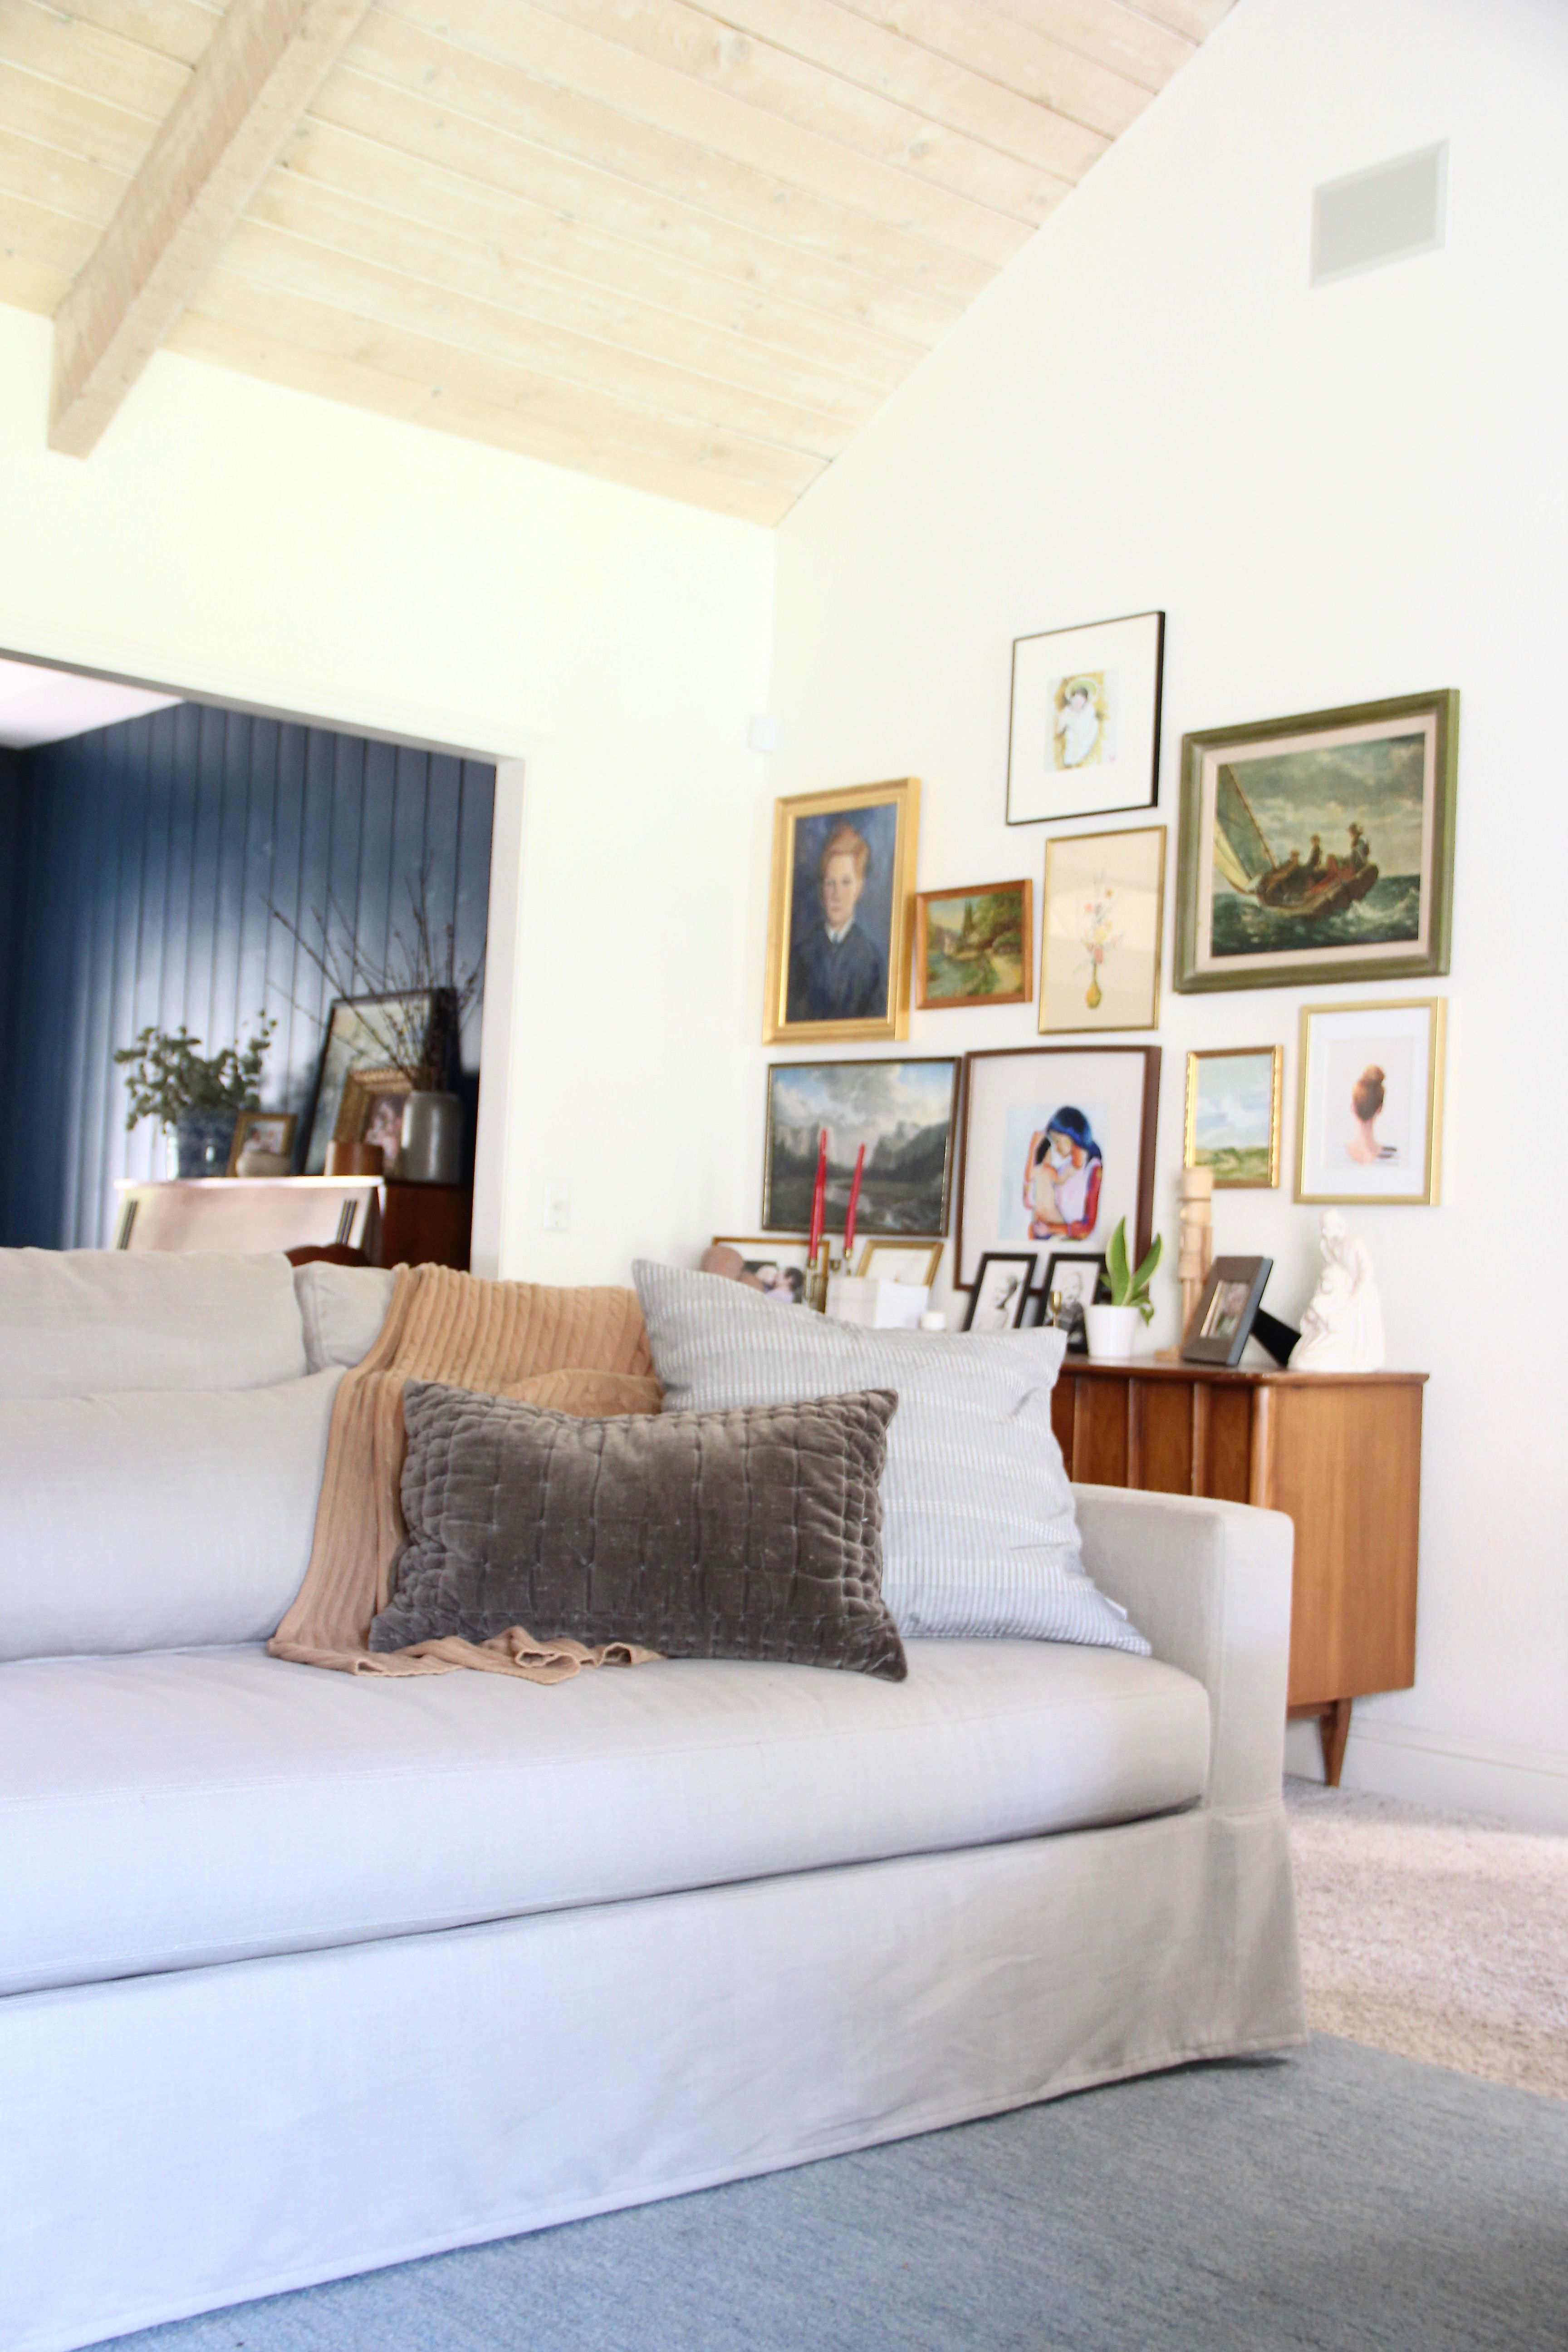 Our New Pottery Barn Couch (and how we picked it)! The